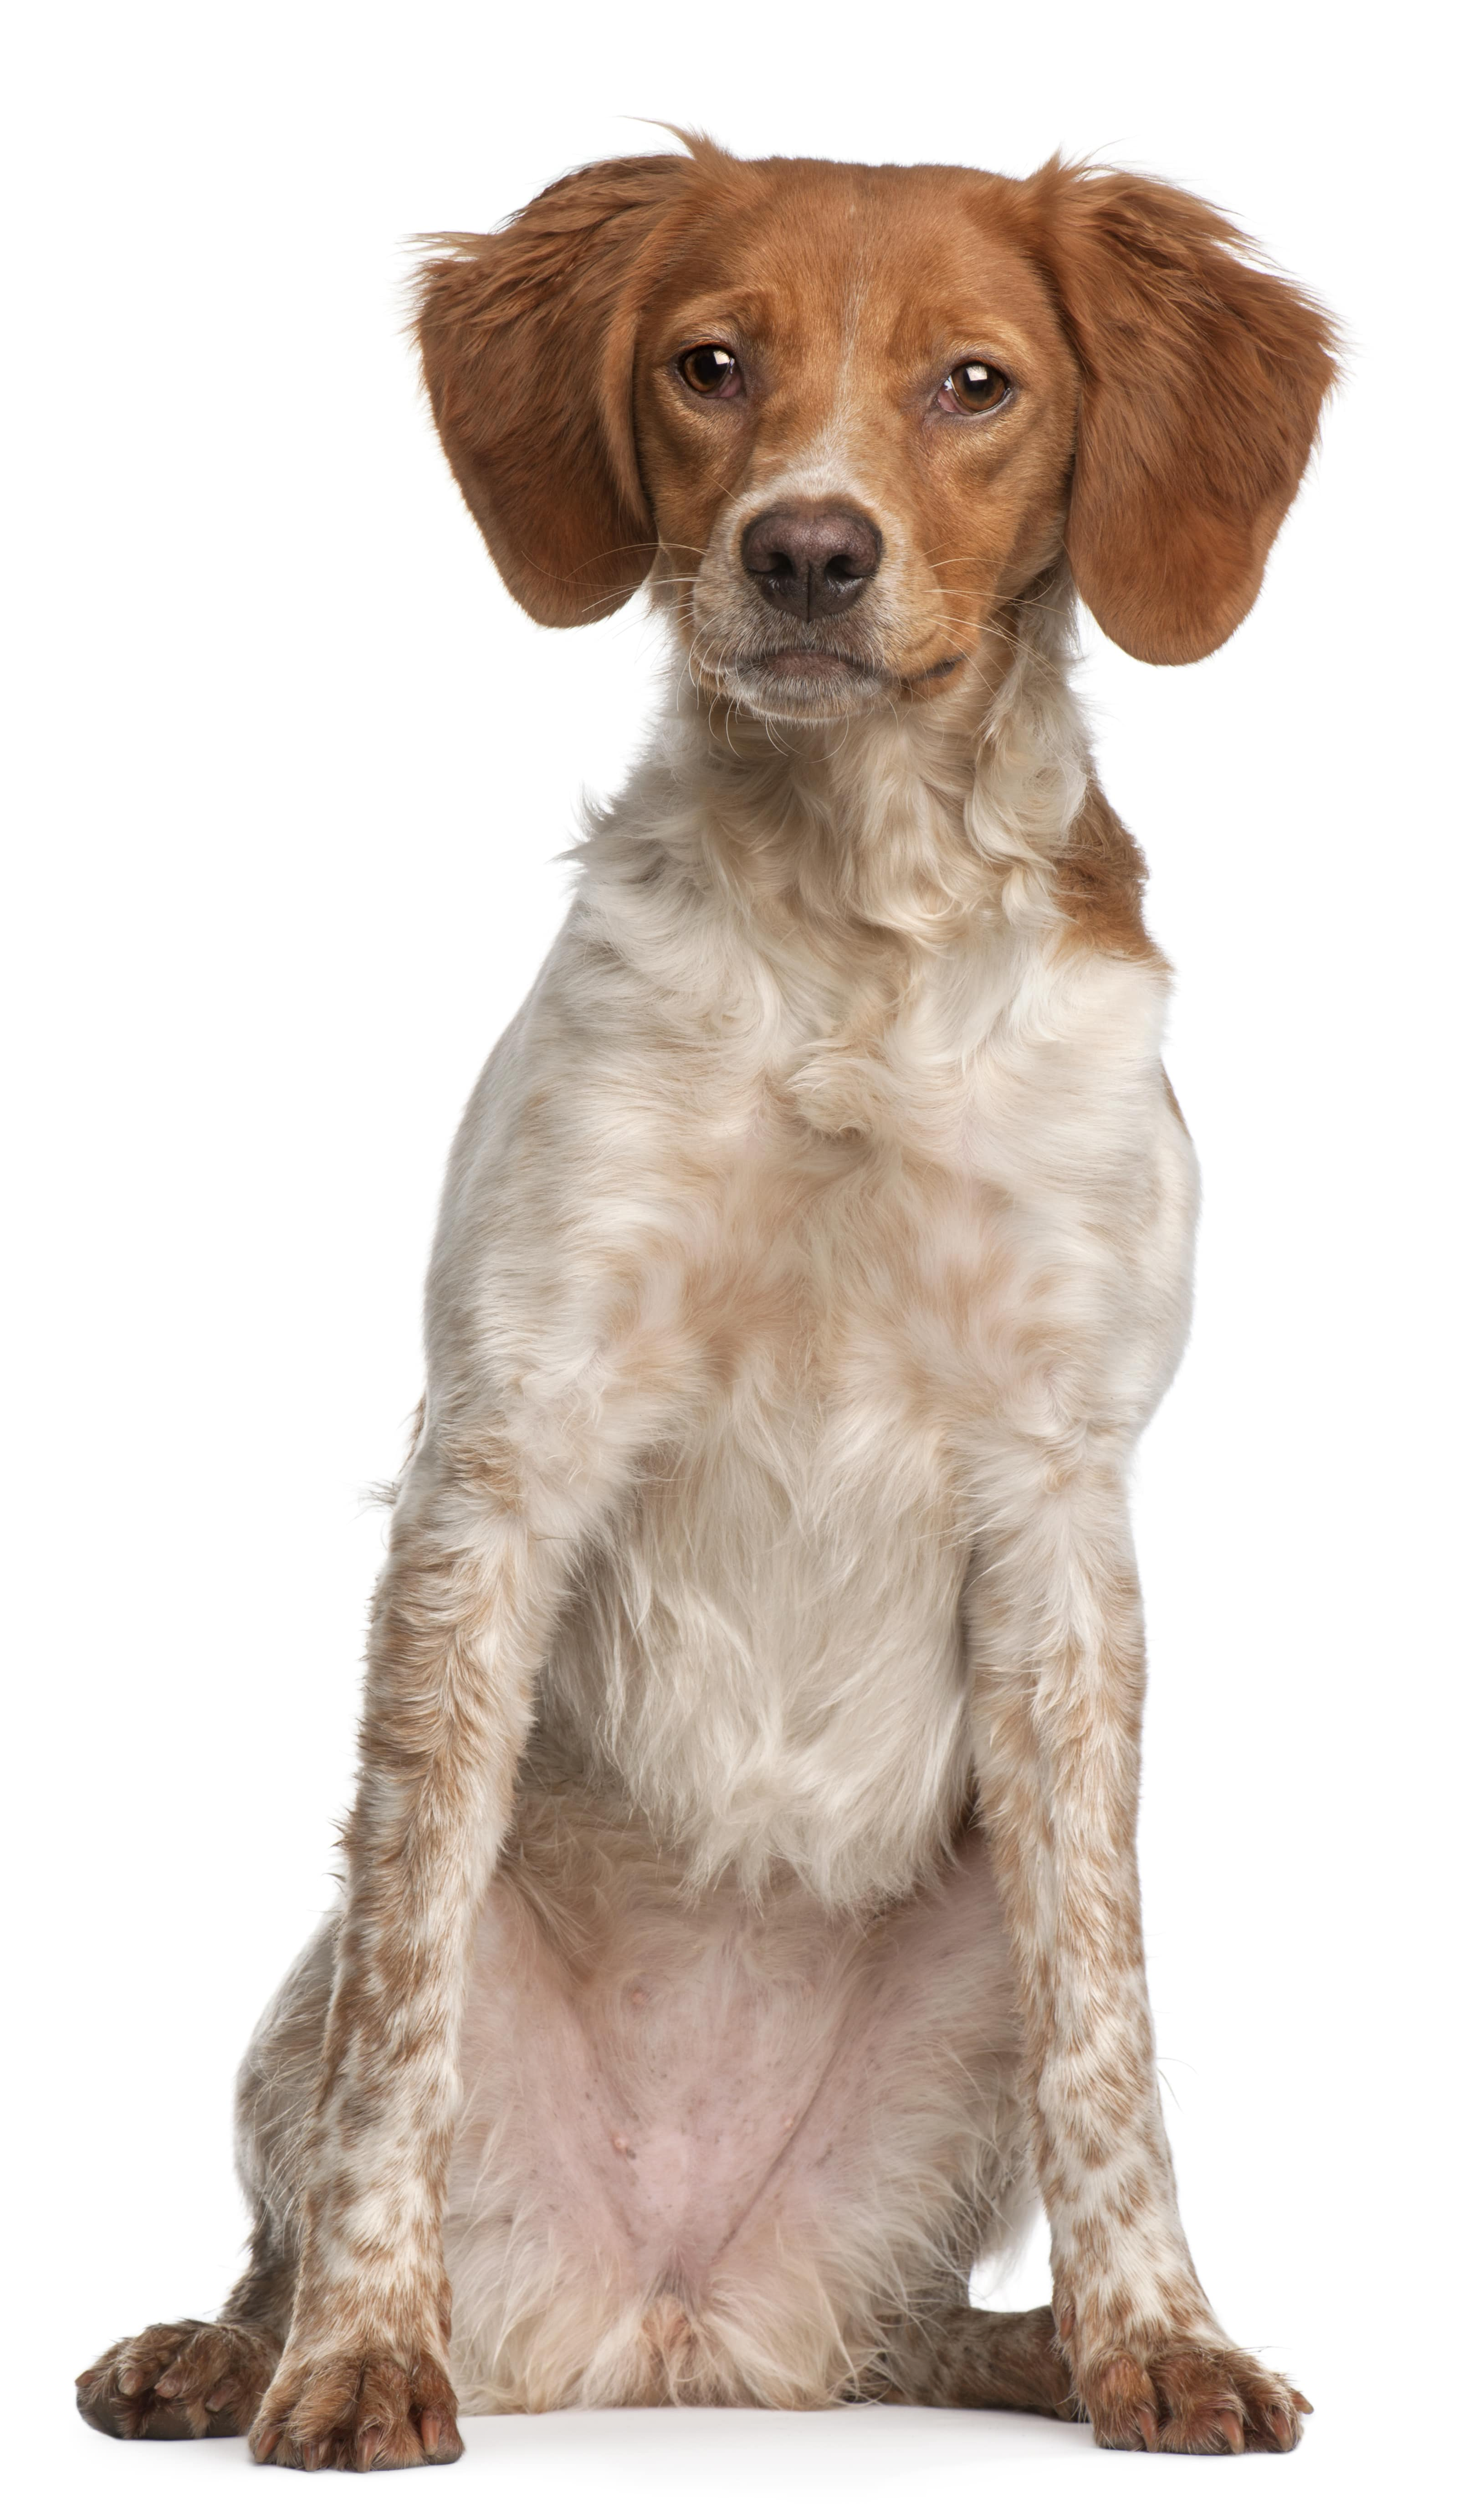 Brittany puppy, 6 months old, sitting in front of white background